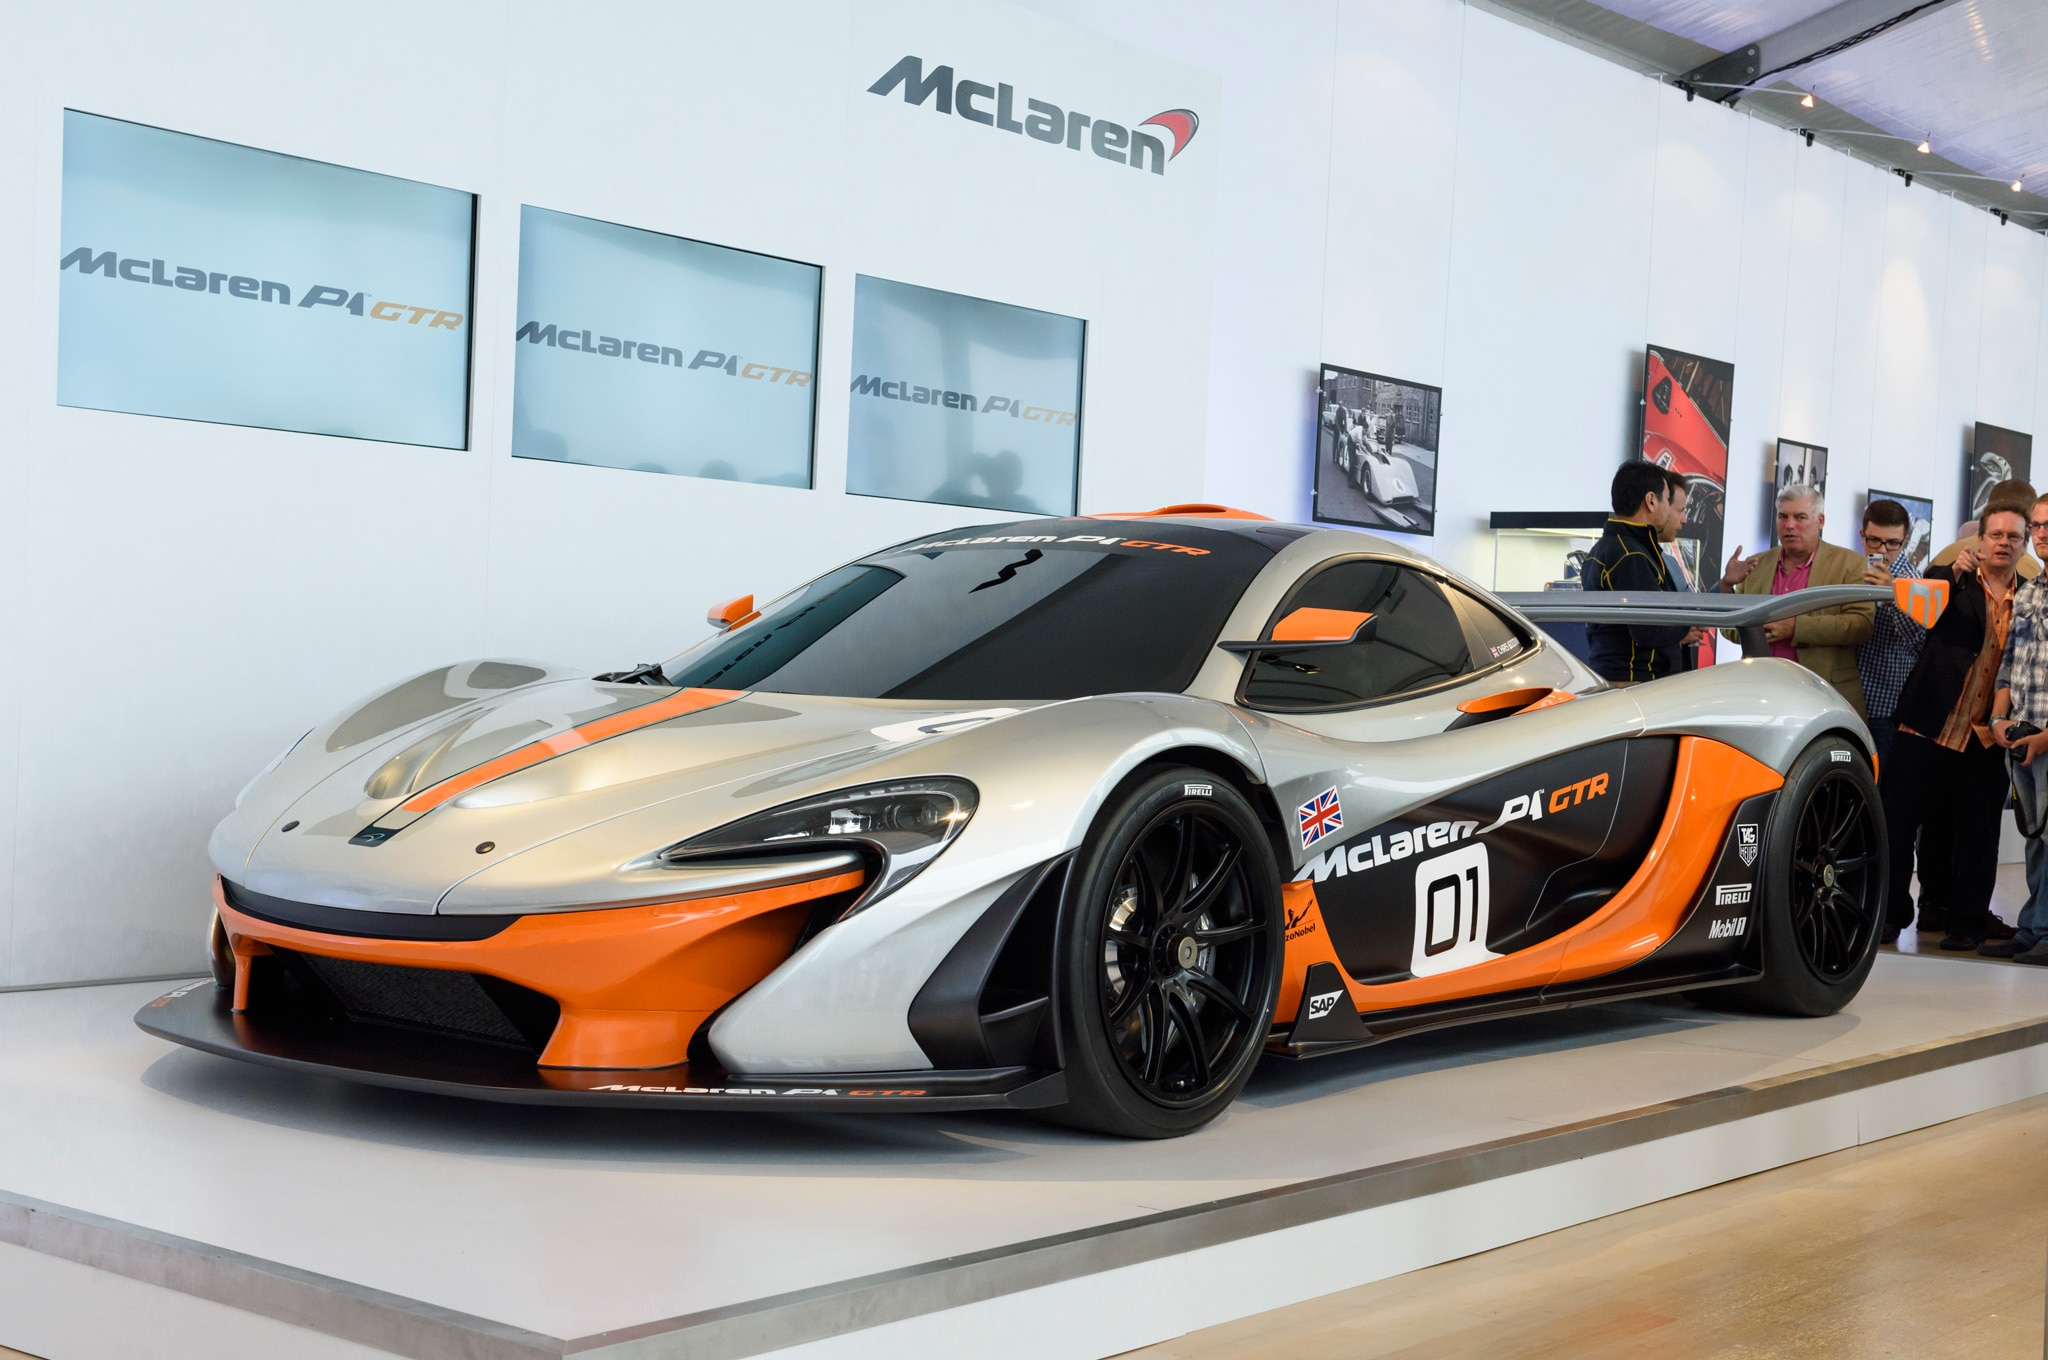 Mclaren p1 gtr extreme track weapon unveiled pictures - Aerodynamic